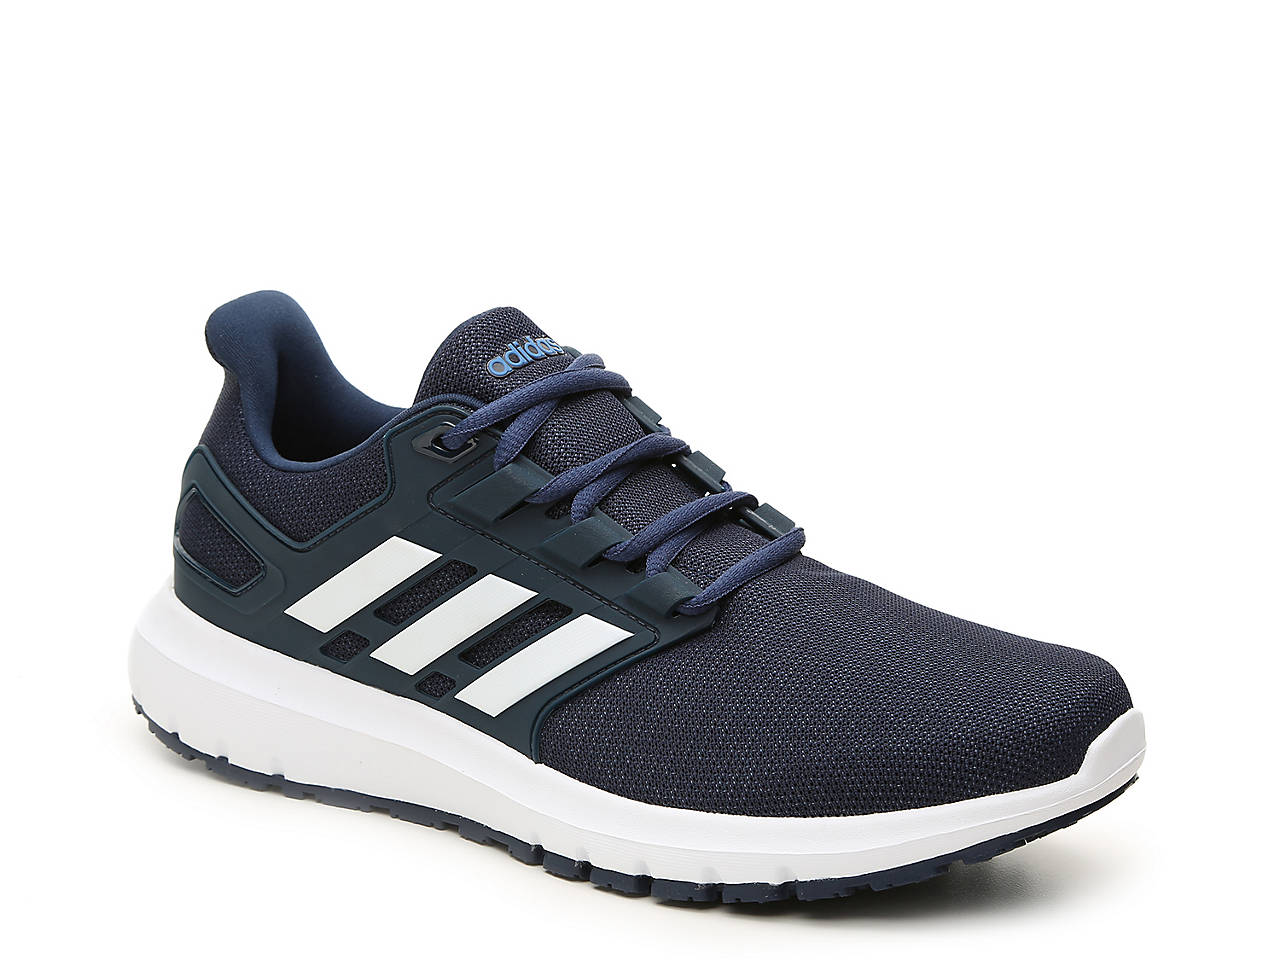 b17acc910 adidas Energy Cloud 2 Running Shoe - Men's Men's Shoes | DSW